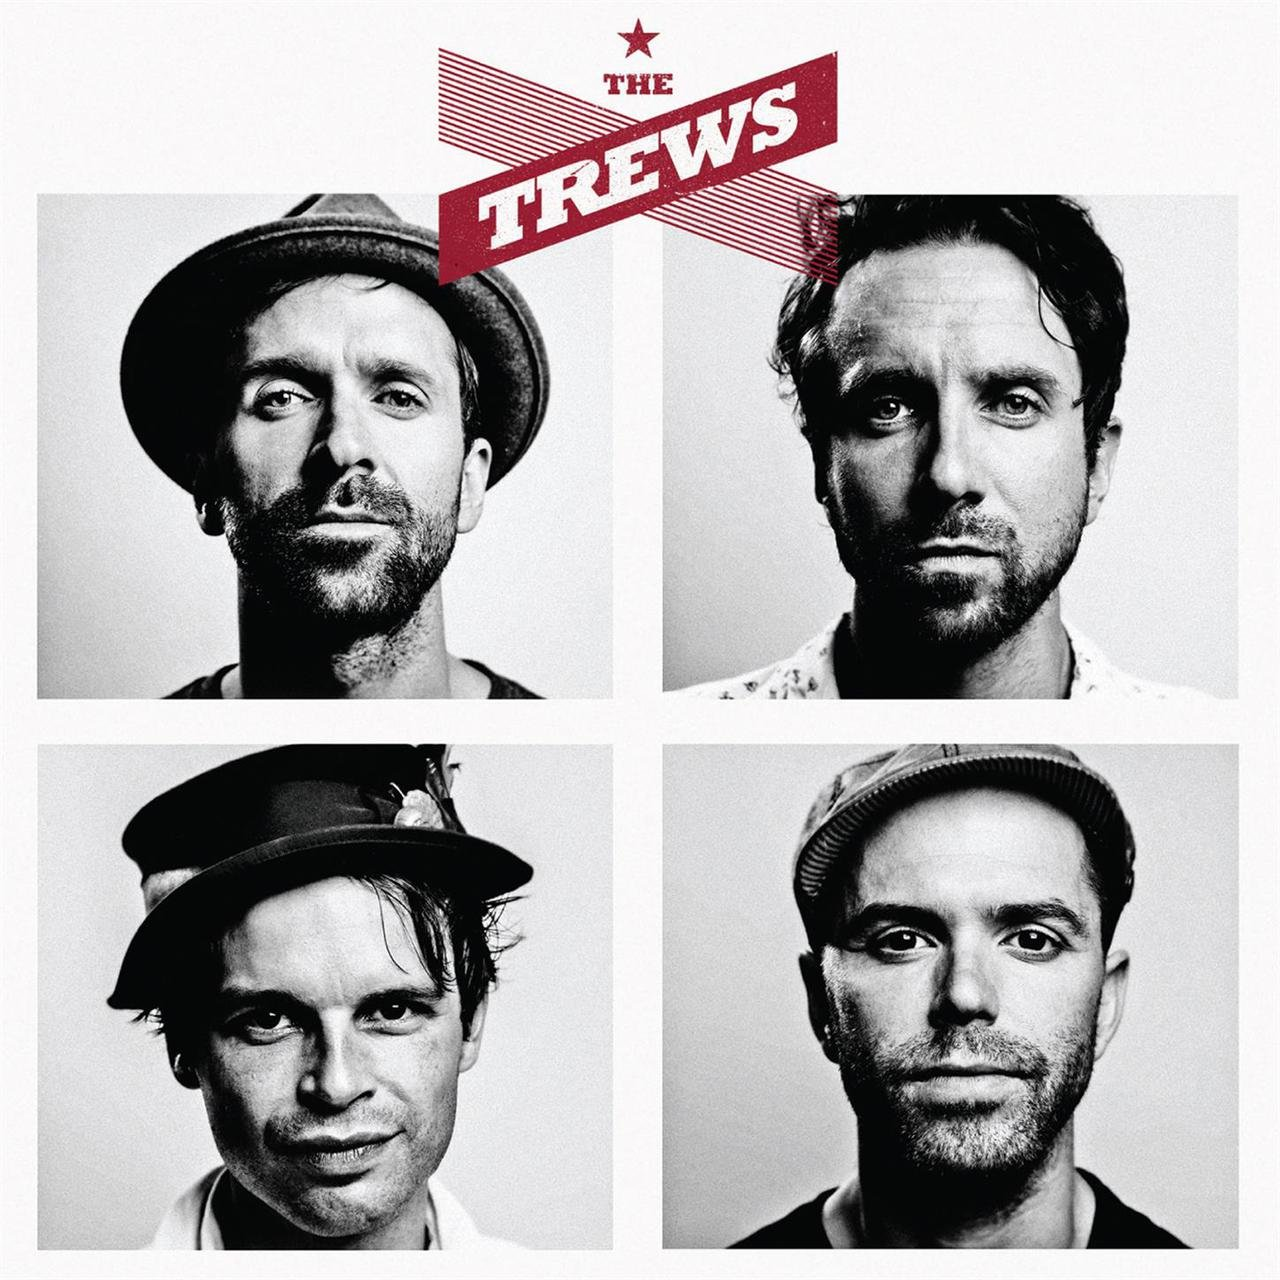 The Trews (Deluxe Edition)